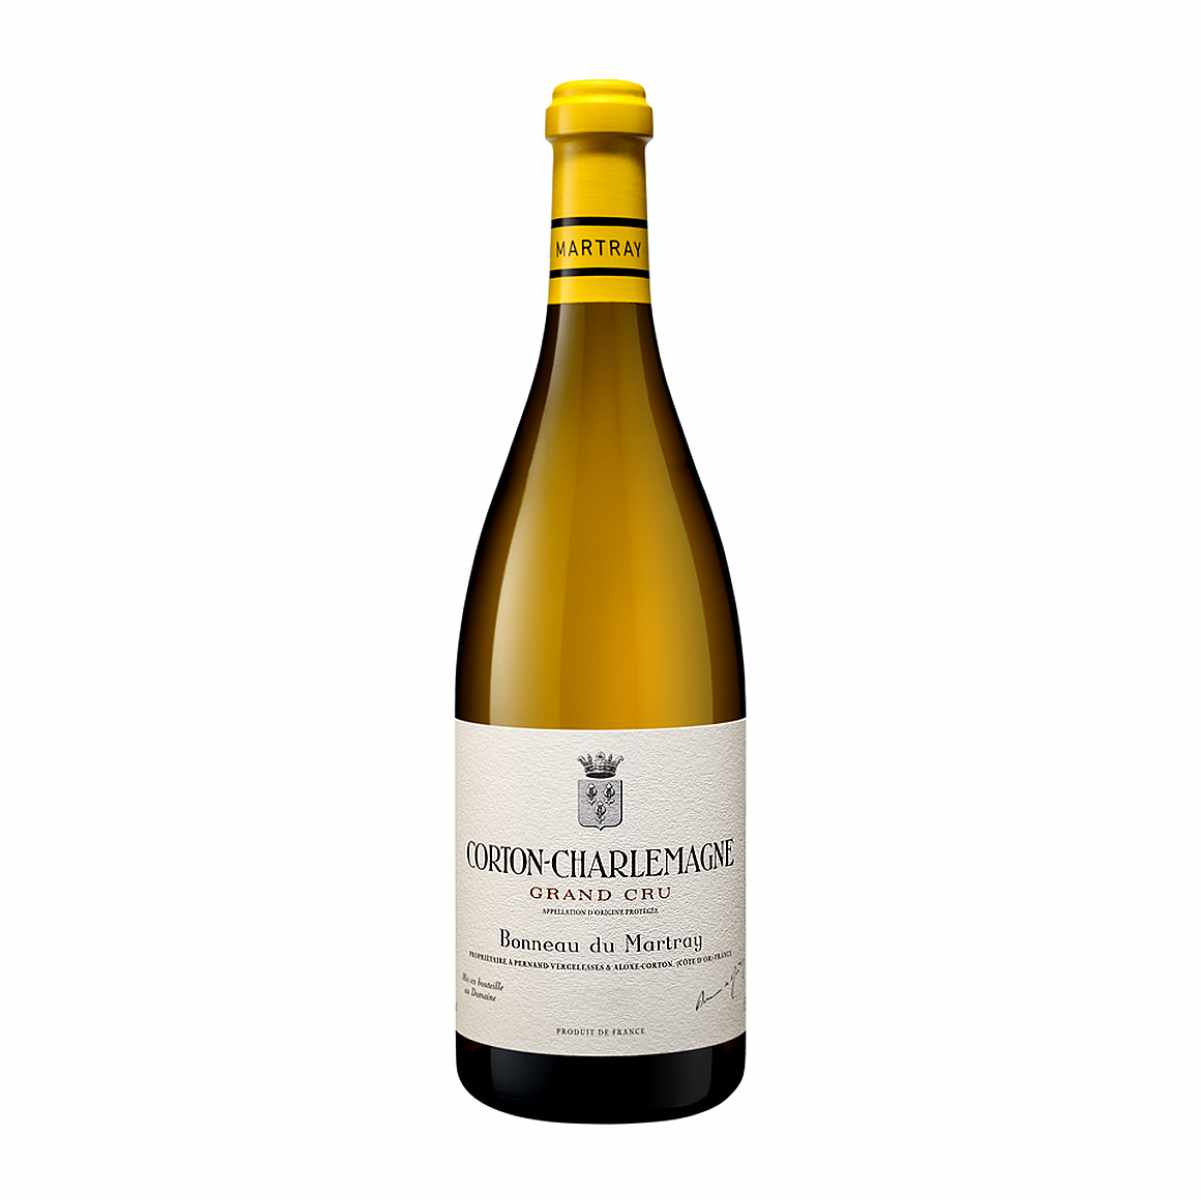 *Bonneau du Martray Corton-Charlemagne Grand Cru 2018